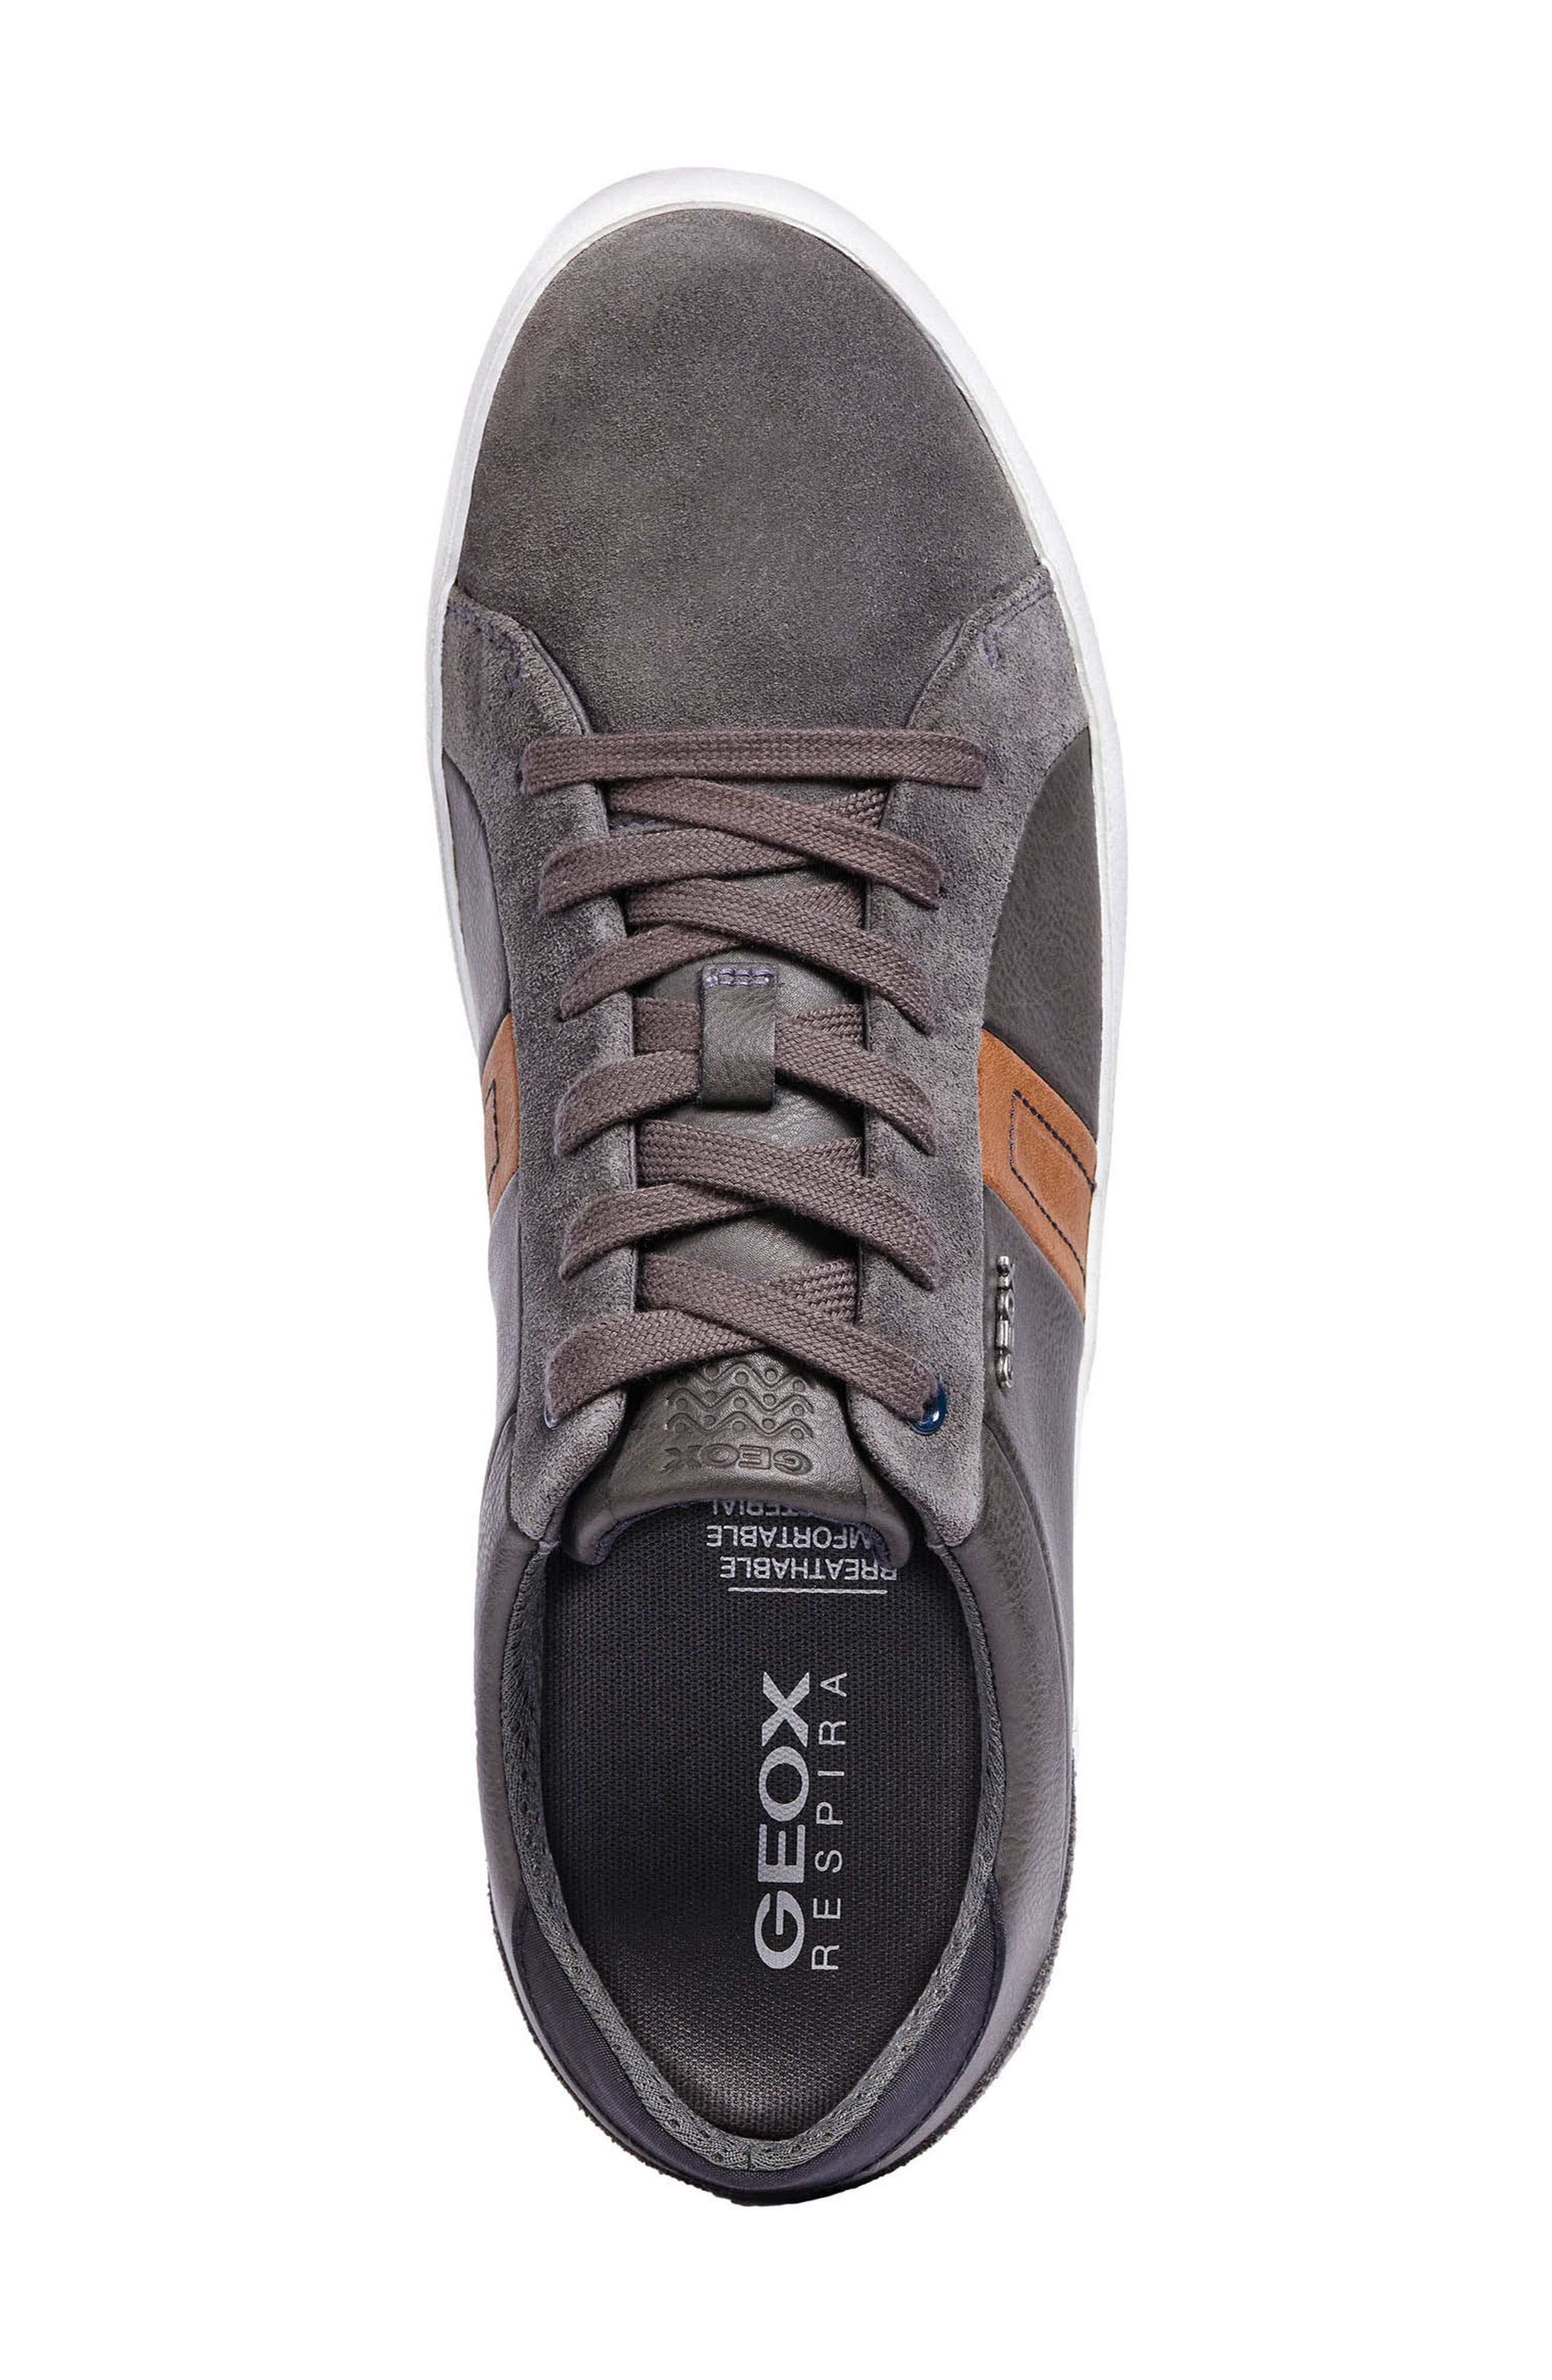 Box 40 Low Top Sneaker,                             Alternate thumbnail 5, color,                             ANTHRACITE LEATHER